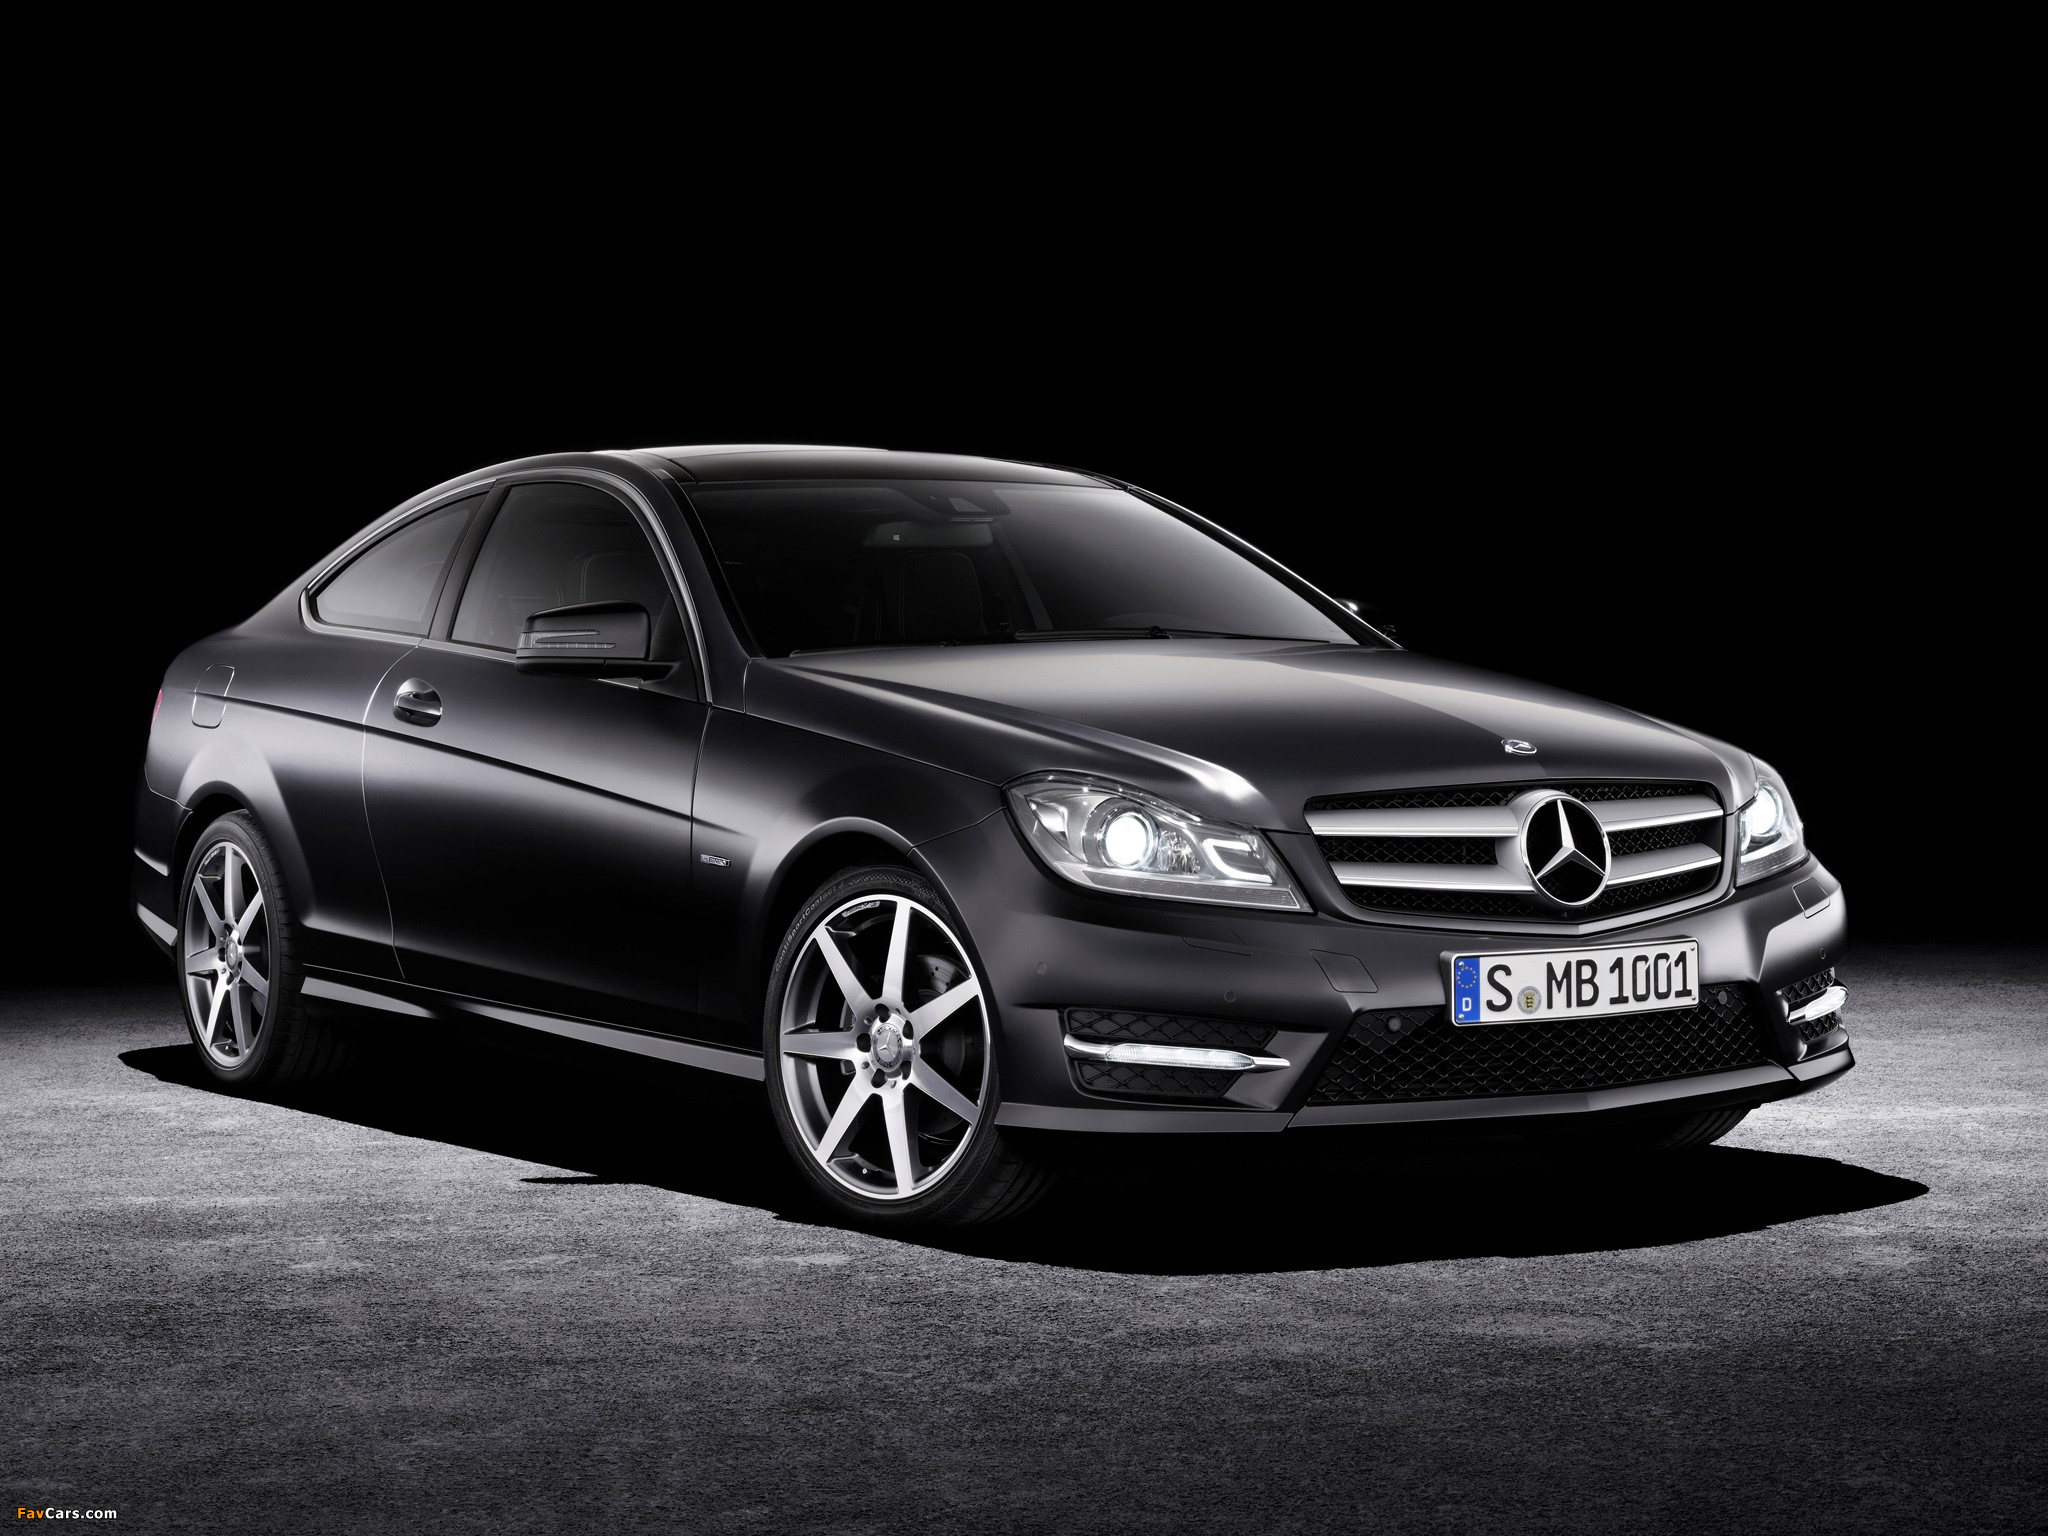 Mercedes-Benz C 250 CDI Coupe (C204) 2011 wallpapers (2048 x 1536)